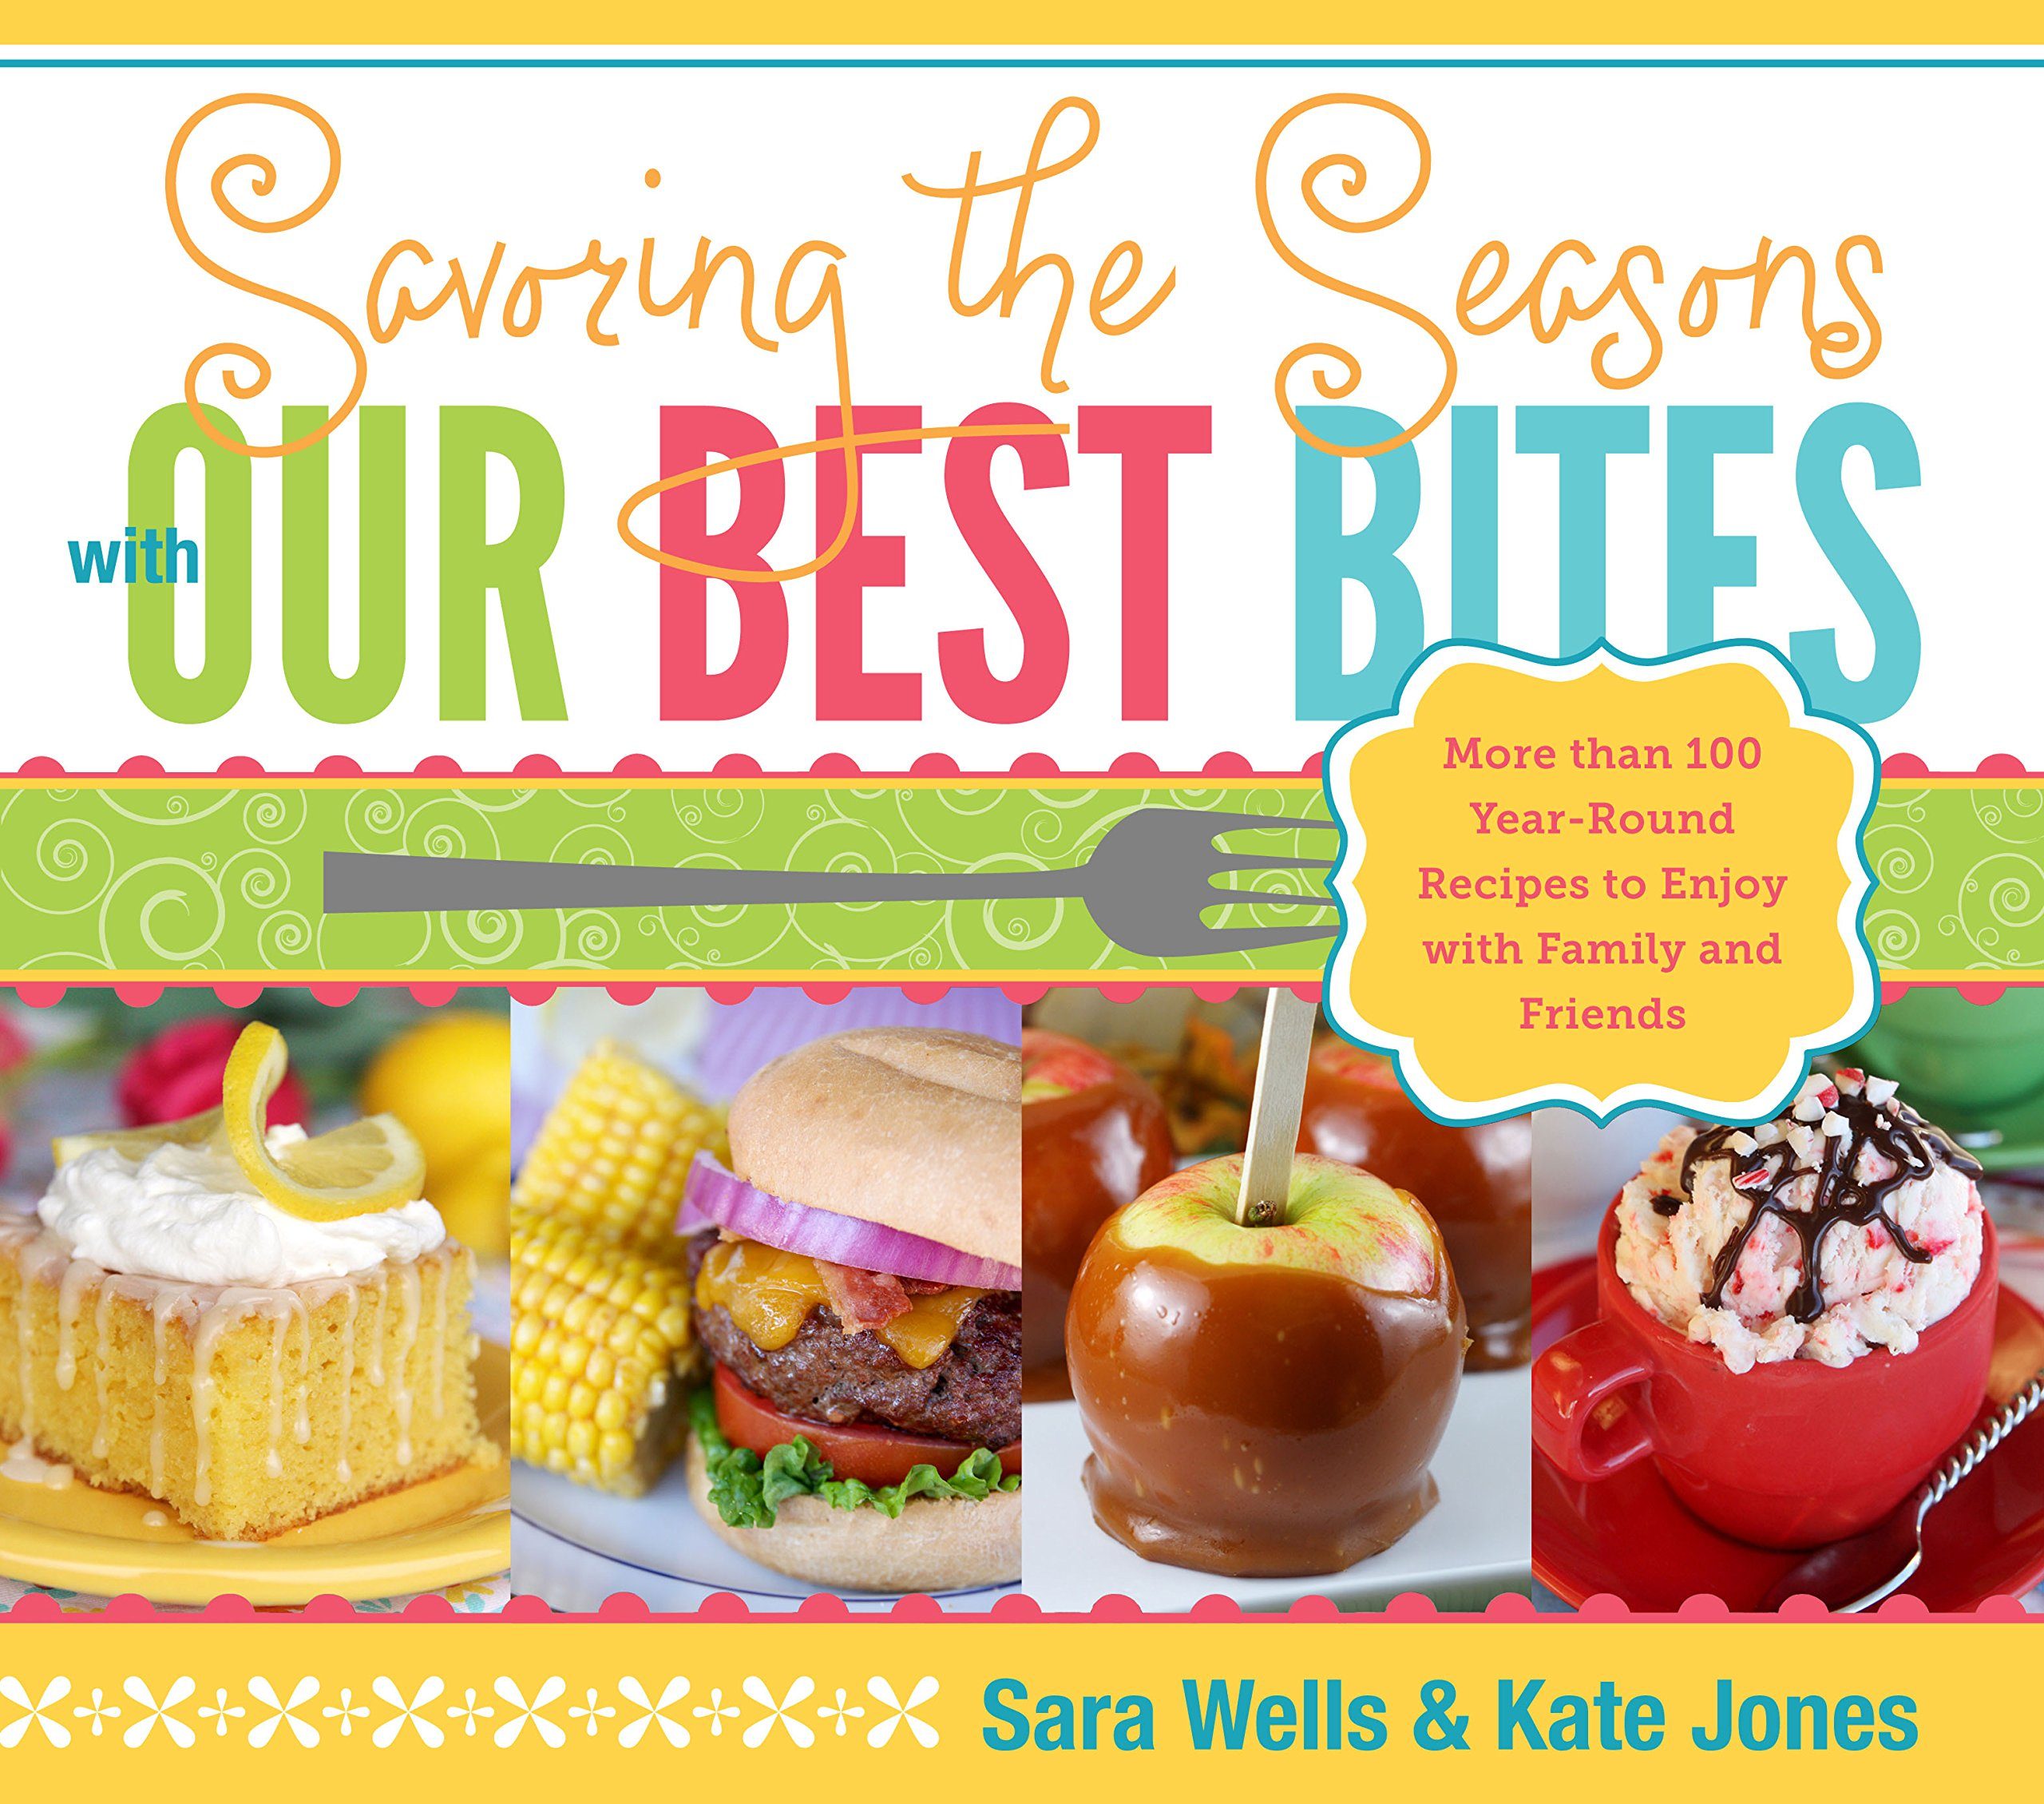 Best Cookbook Covers ~ Savoring the seasons with our best bites sara wells kate jones